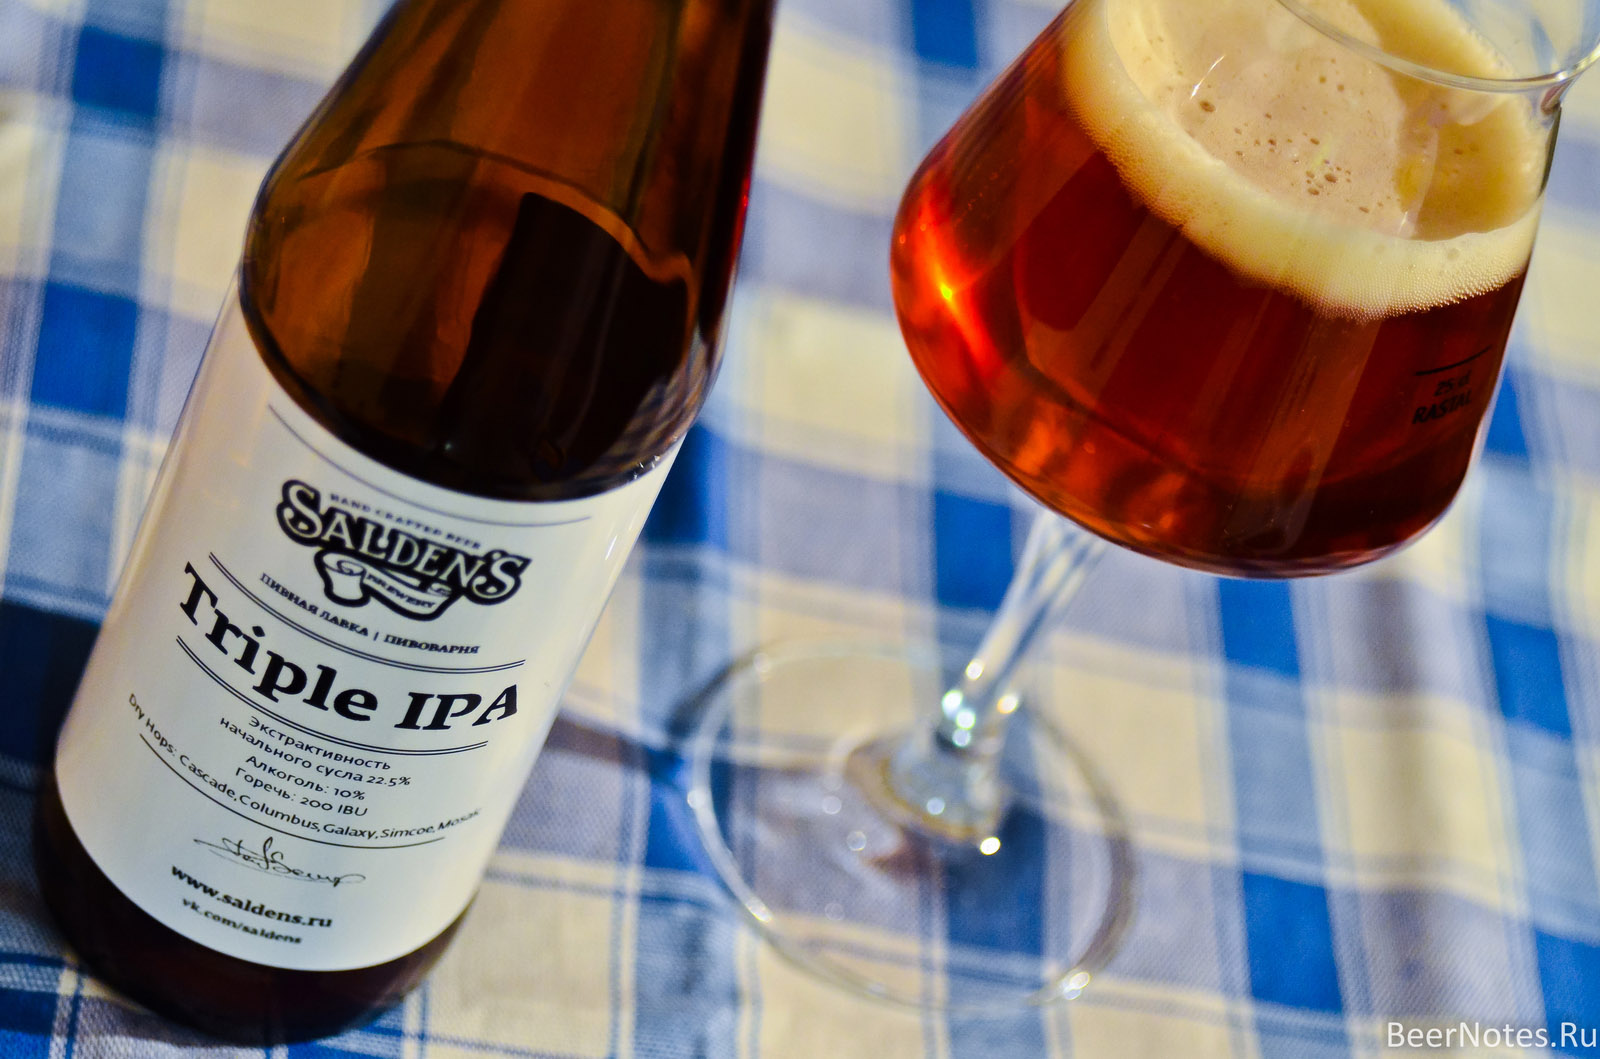 Salden's Triple IPA4